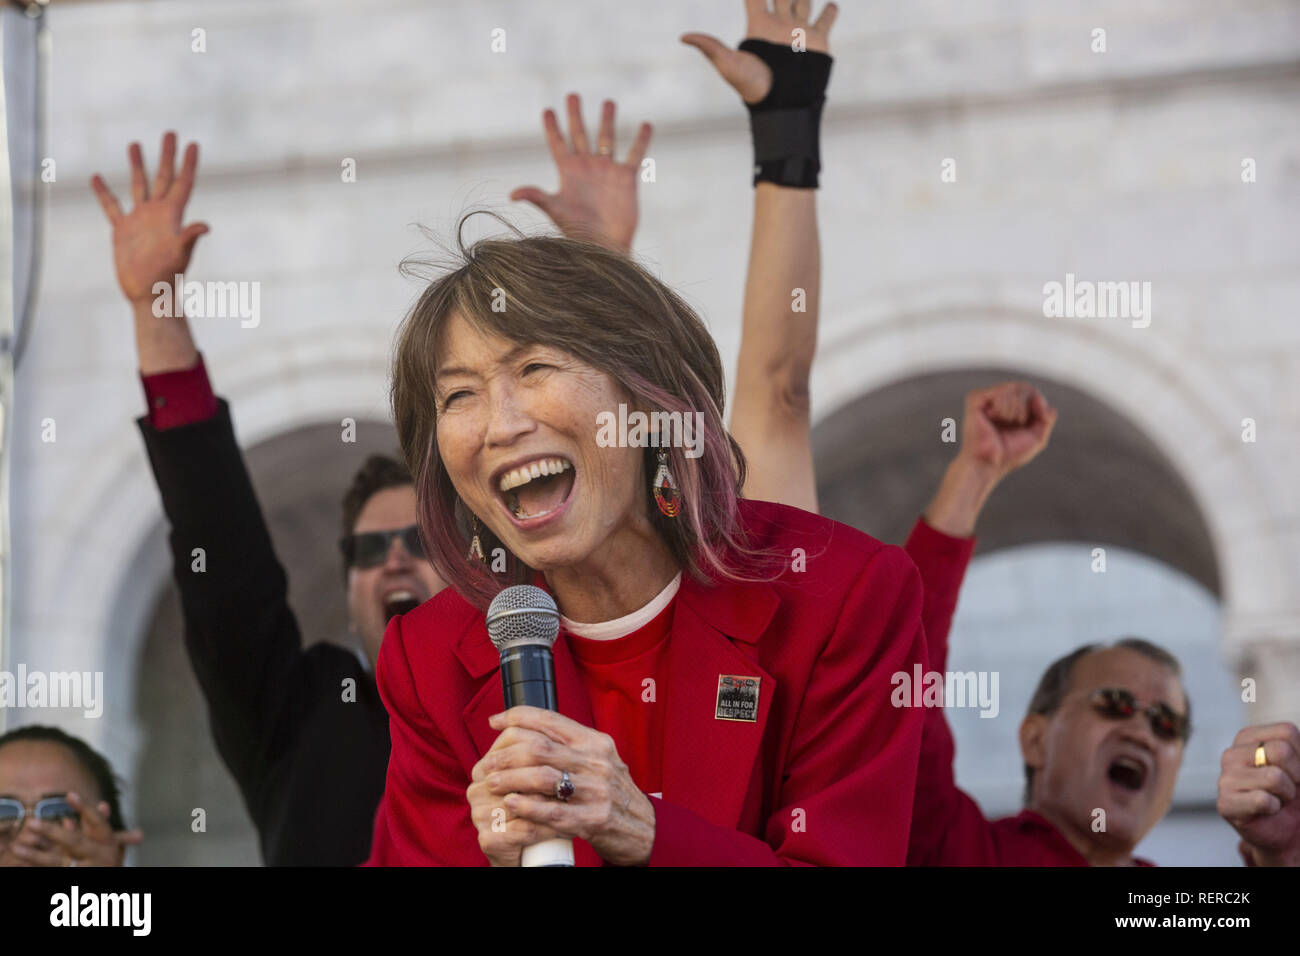 Los Angeles, California, USA. 22nd Jan, 2019. Arlene Inouye, Secretary at UTLA, speaks to the crowd at a downtown Los Angeles rally at city hall Tuesday, Jan. 22, 2019 celebrating the announcement of an agreement to end the LAUSD teachers strike at a downtown LA rally at city hall. Credit: Allison Zaucha/ZUMA Wire/Alamy Live News - Stock Image